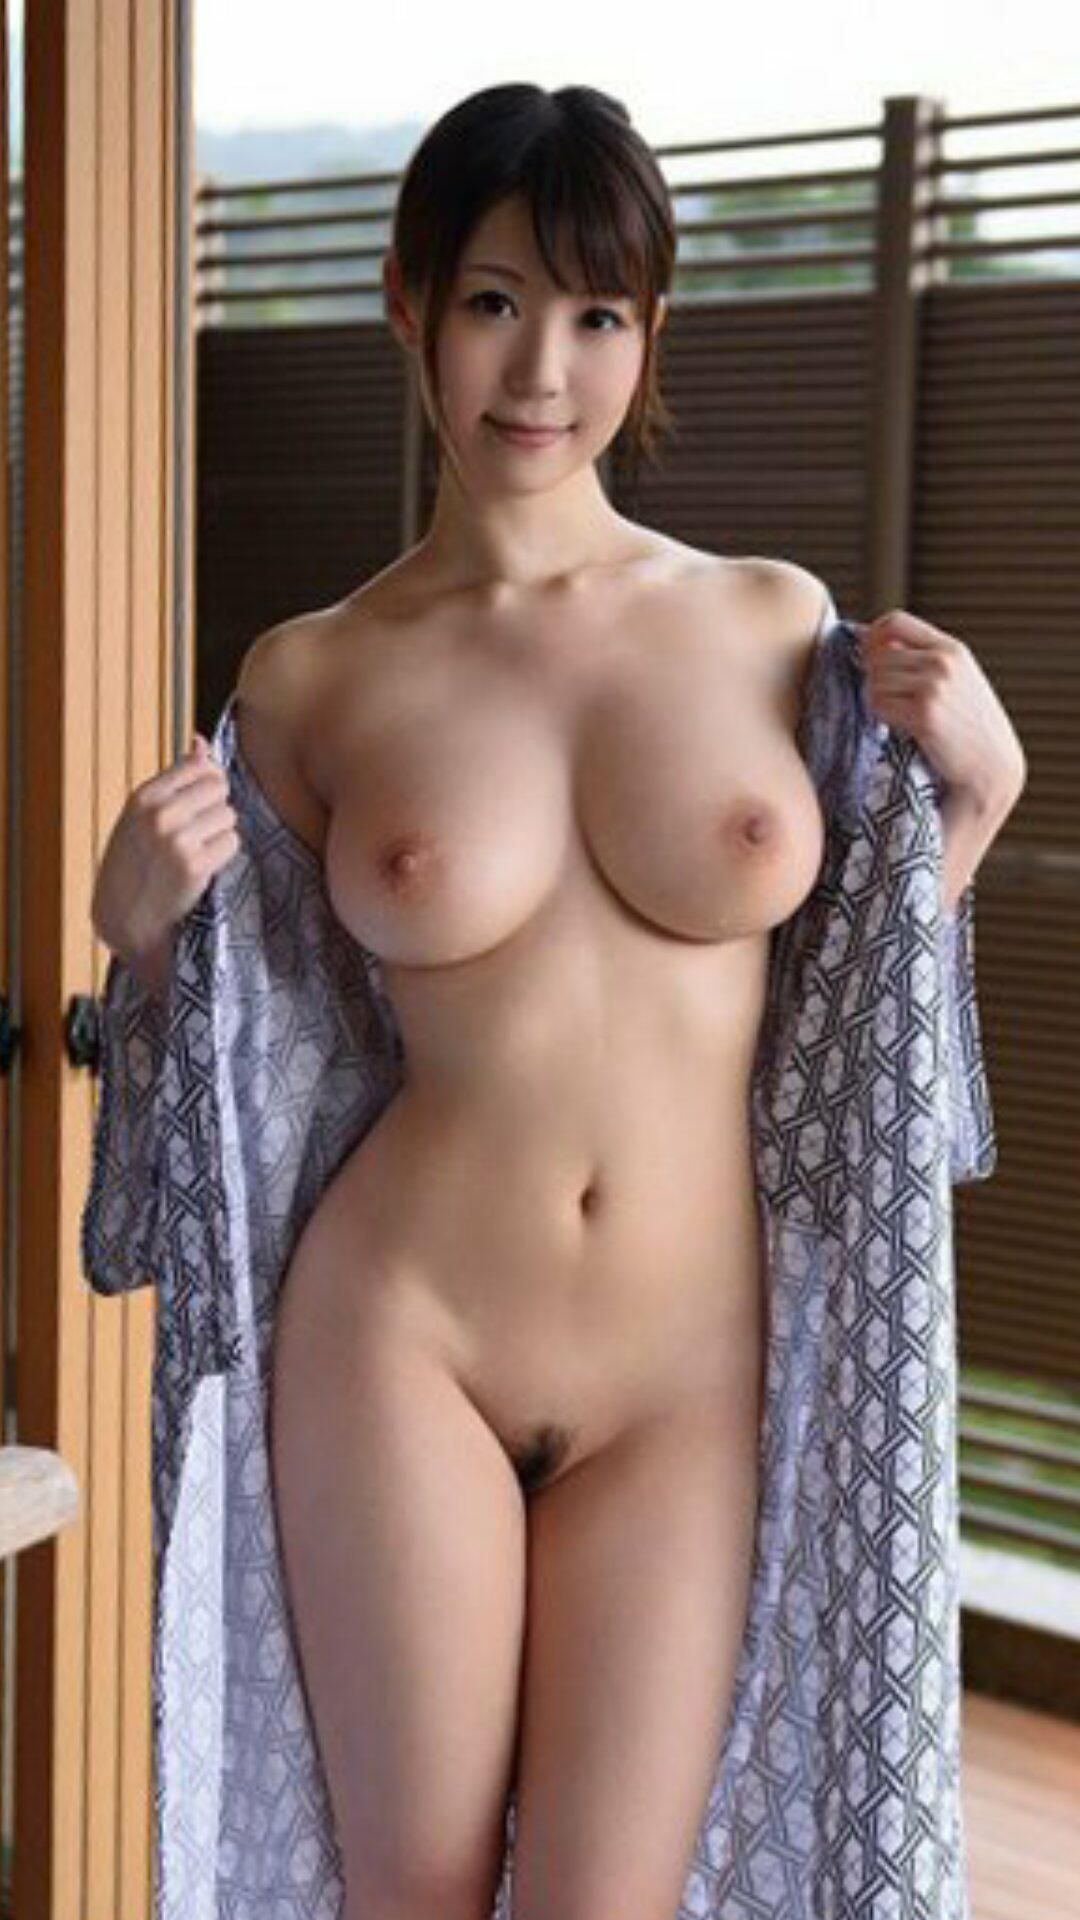 asian naked photo